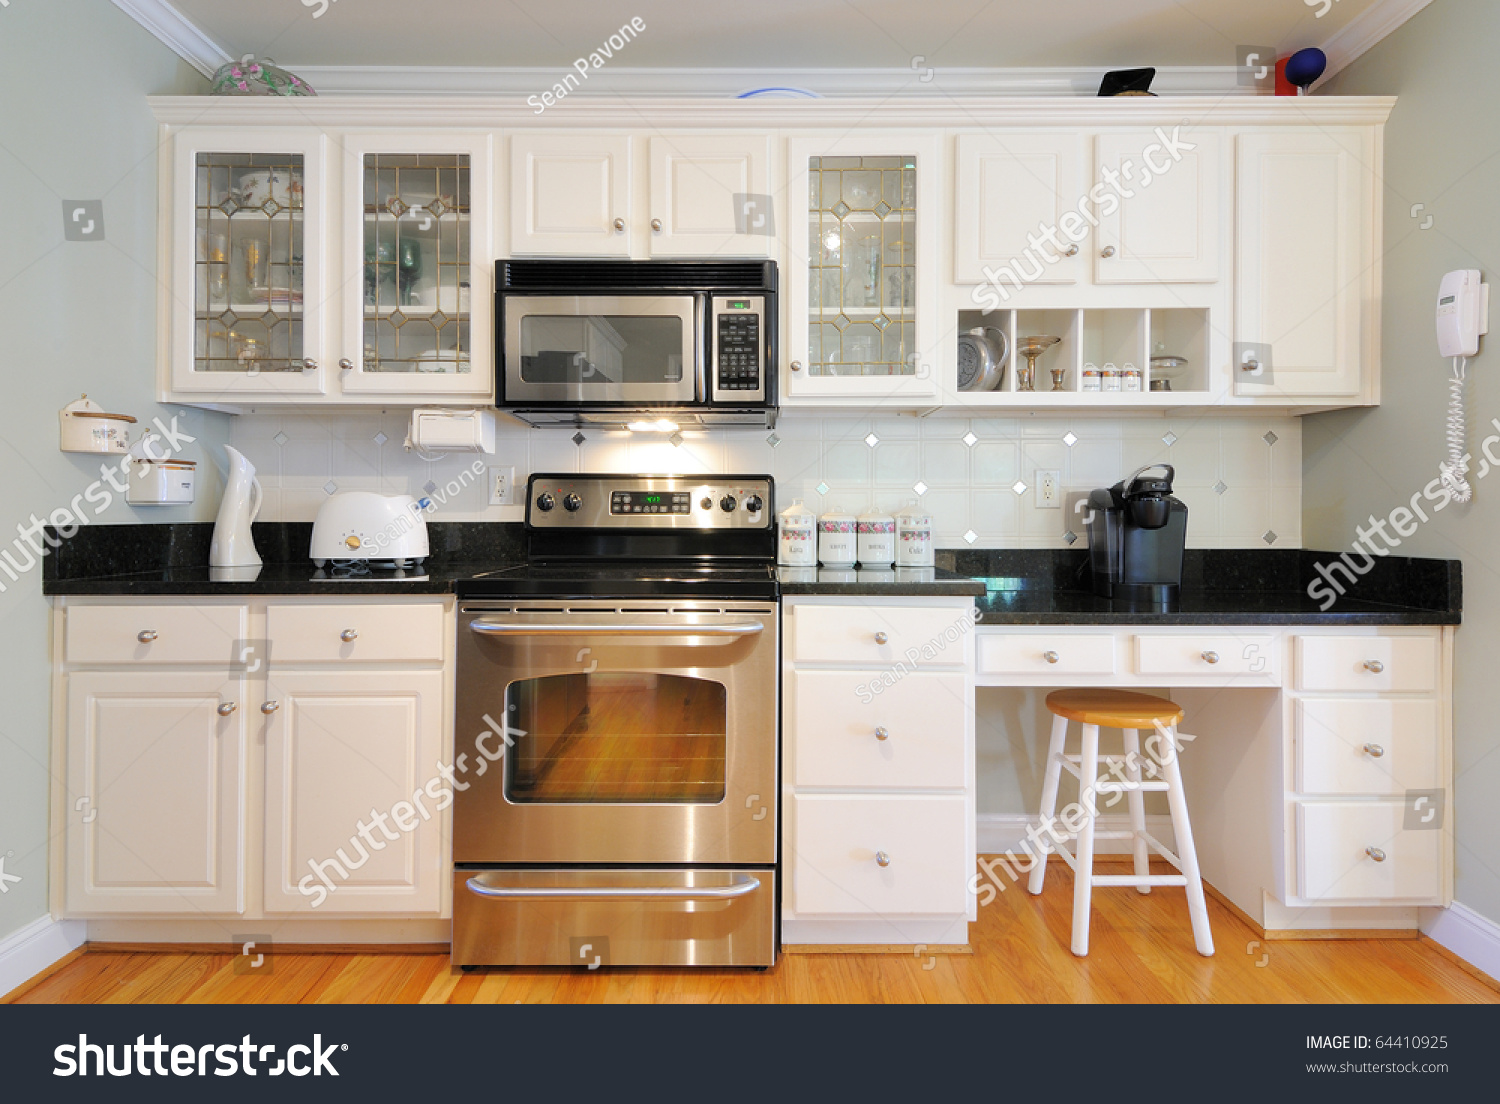 Modern Cabinets For Living Room Kitchen Cabinets N Modern Home Living Stock Photo 64410925